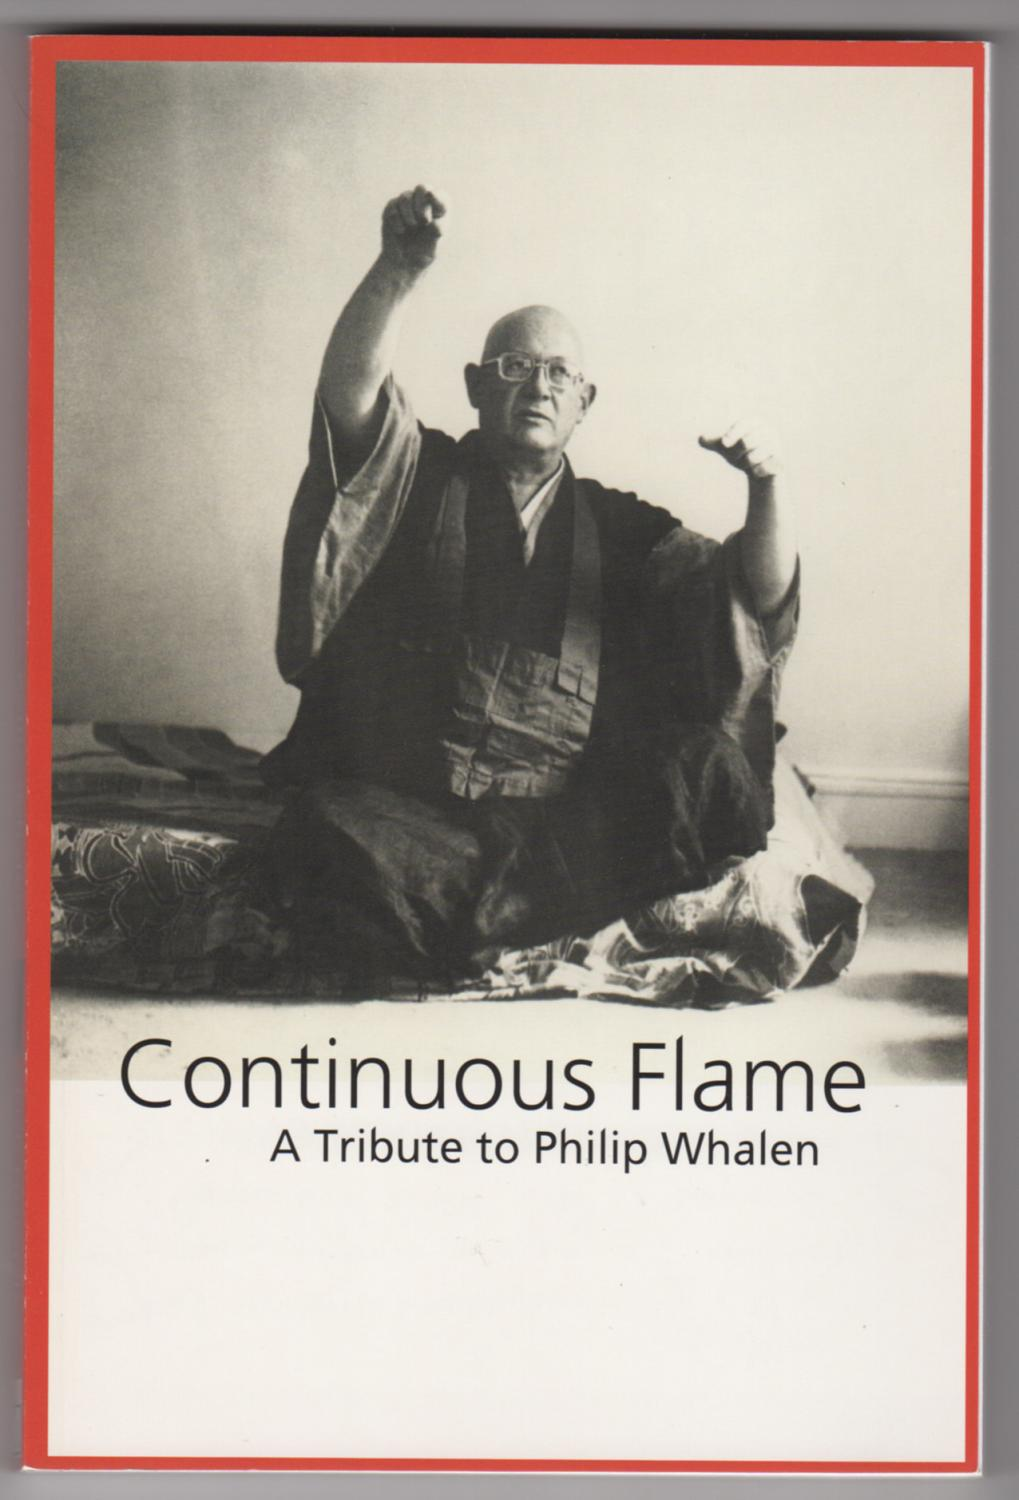 Continuous Flame : A Tribute to Philip Whalen Whalen, Philip (about), Michael Rothenberg and Suzi Winson (eds.), Anselm Hollo, Gary Snyder, Joanne Ky Fine. 8vo, xiv+154pp, printed wrappers. Scarce posthumous tribute to Philip Whalen. Promotional flyers and note to a contributor from one of the edito